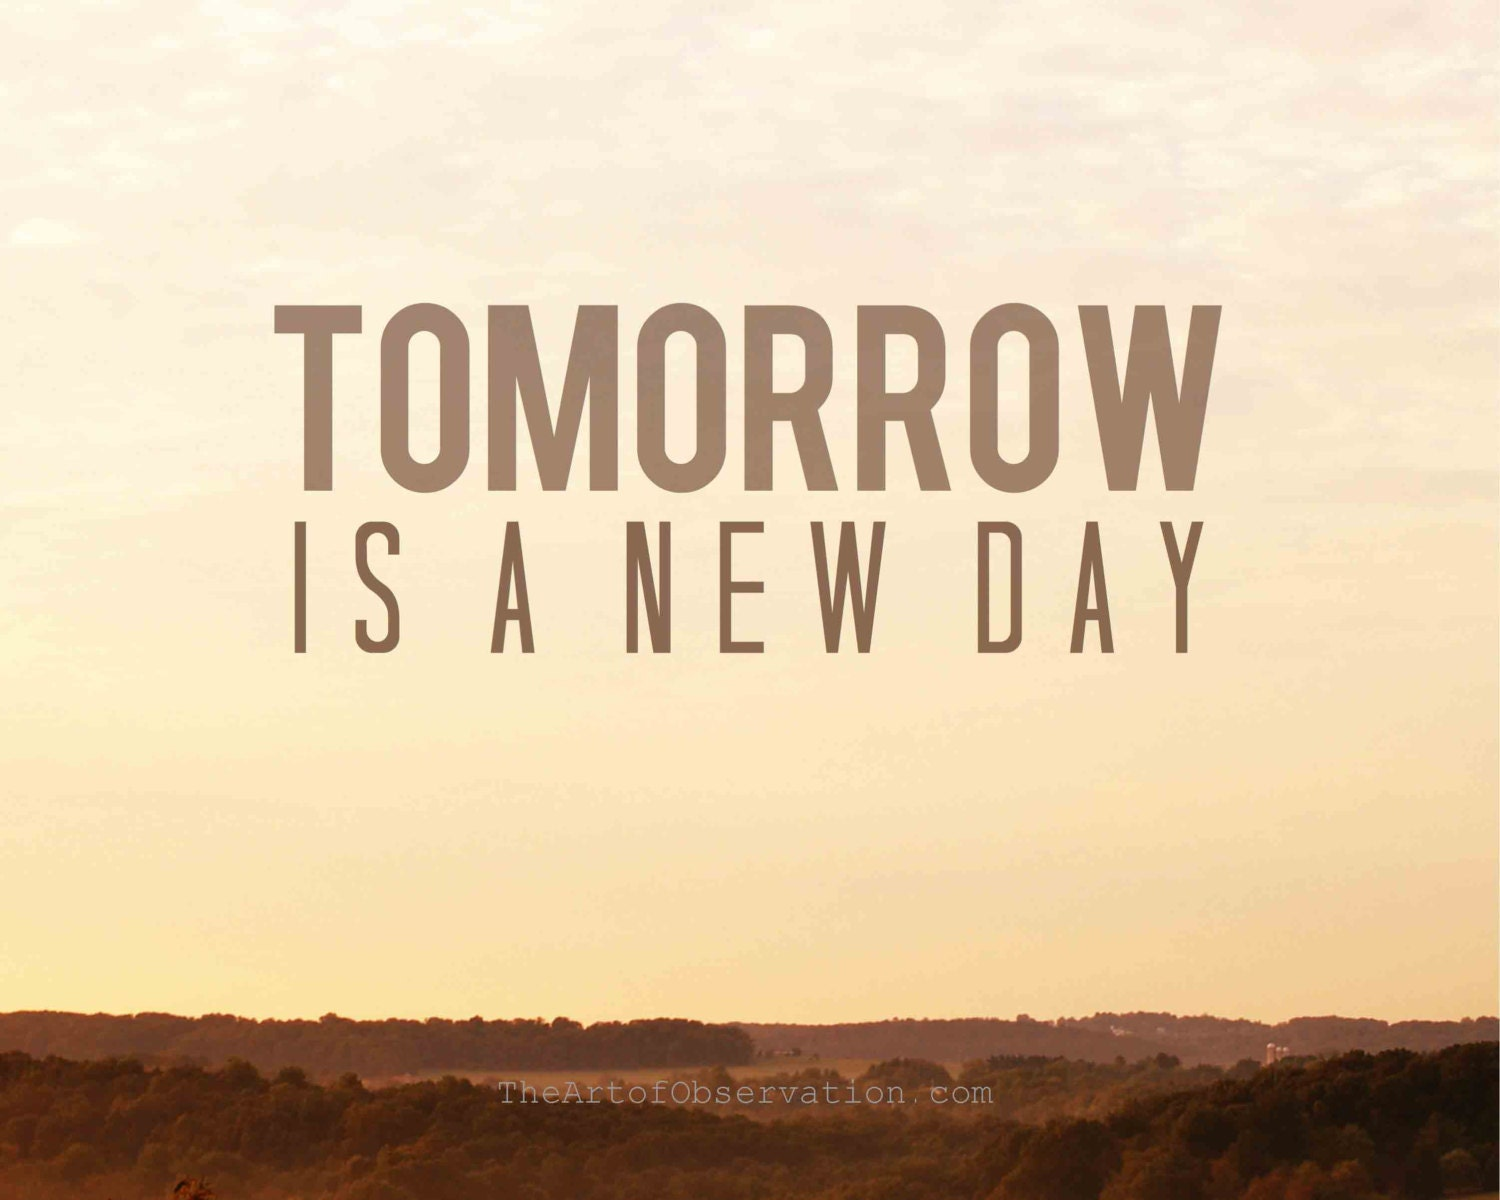 New Day Inspirational Quotes: Items Similar To Tomorrow, Inspirational Quote, Hope, A